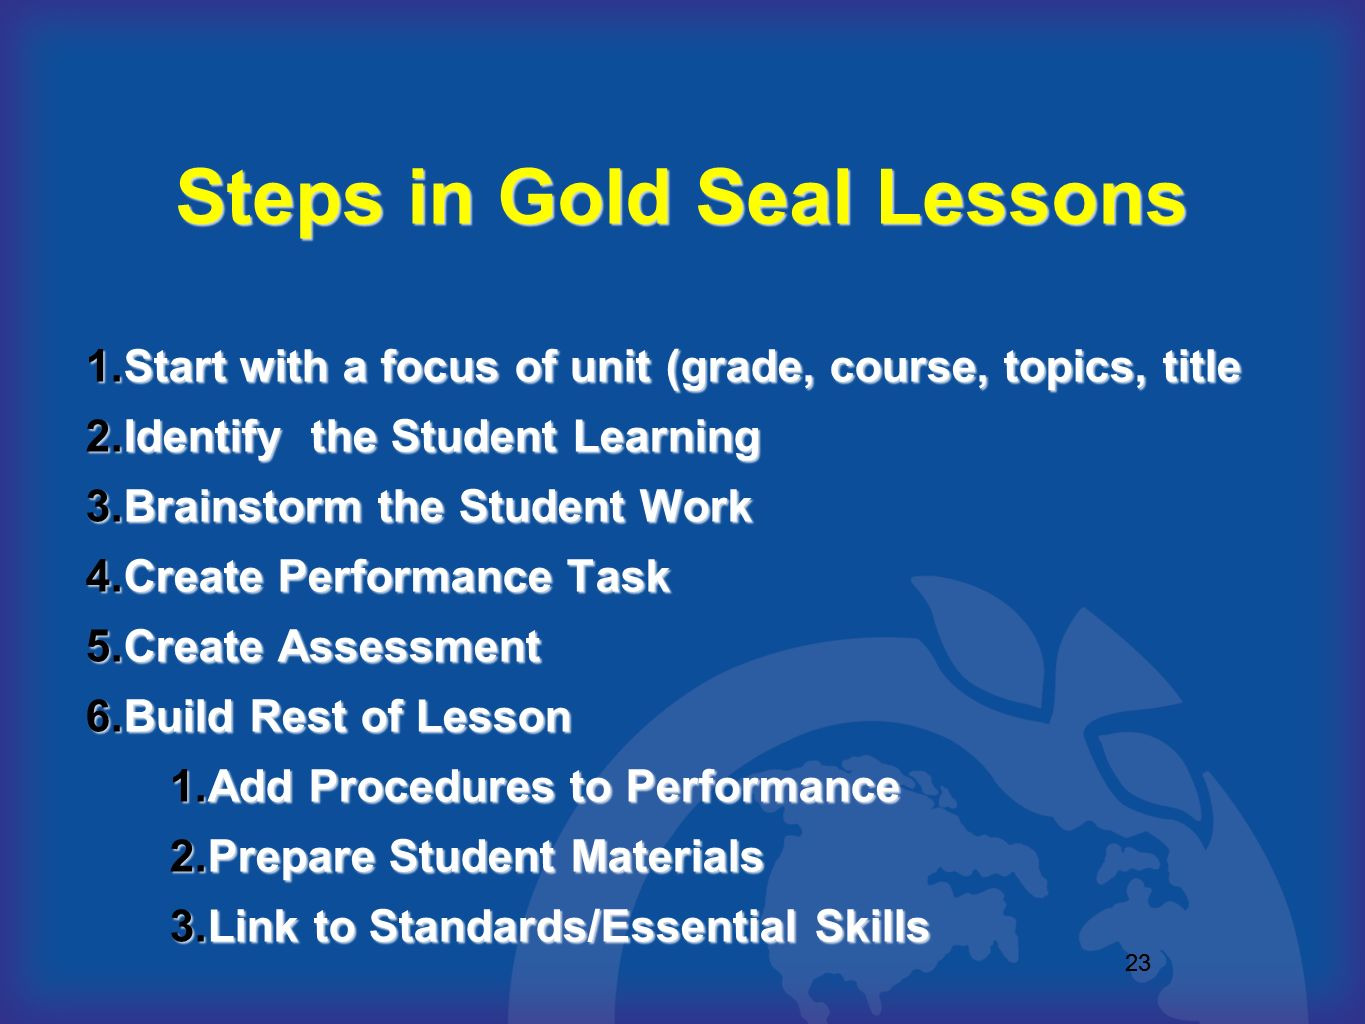 Steps in Gold Seal Lessons